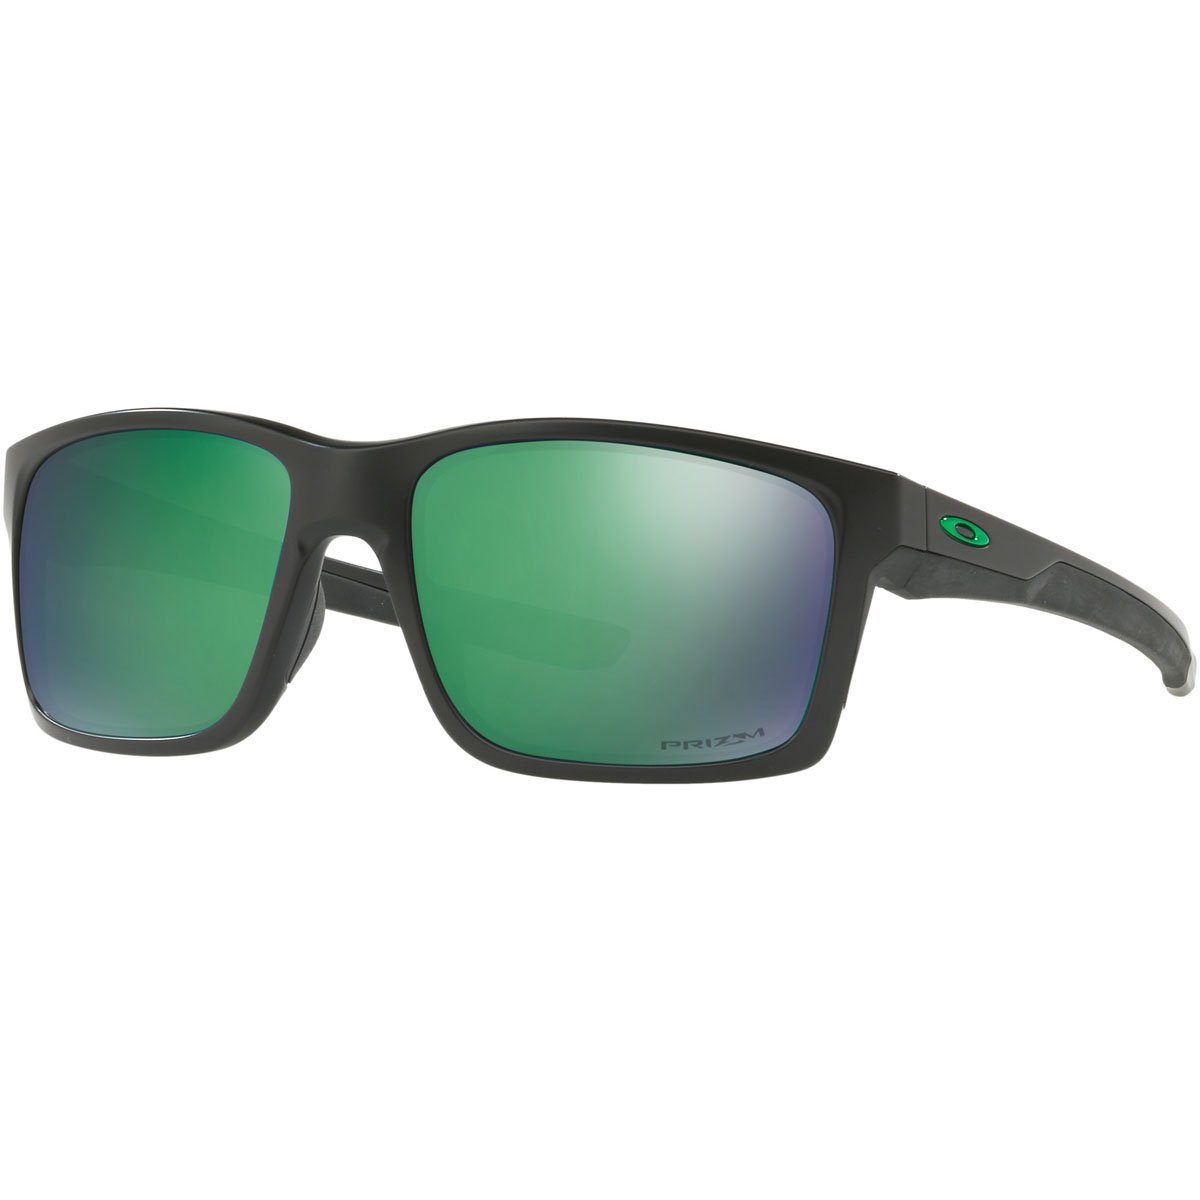 Oakley Men's OO9264 Mainlink Rectangular Sunglasses, Matte Black/Prizm Jade Polarized, 57 mm by Oakley